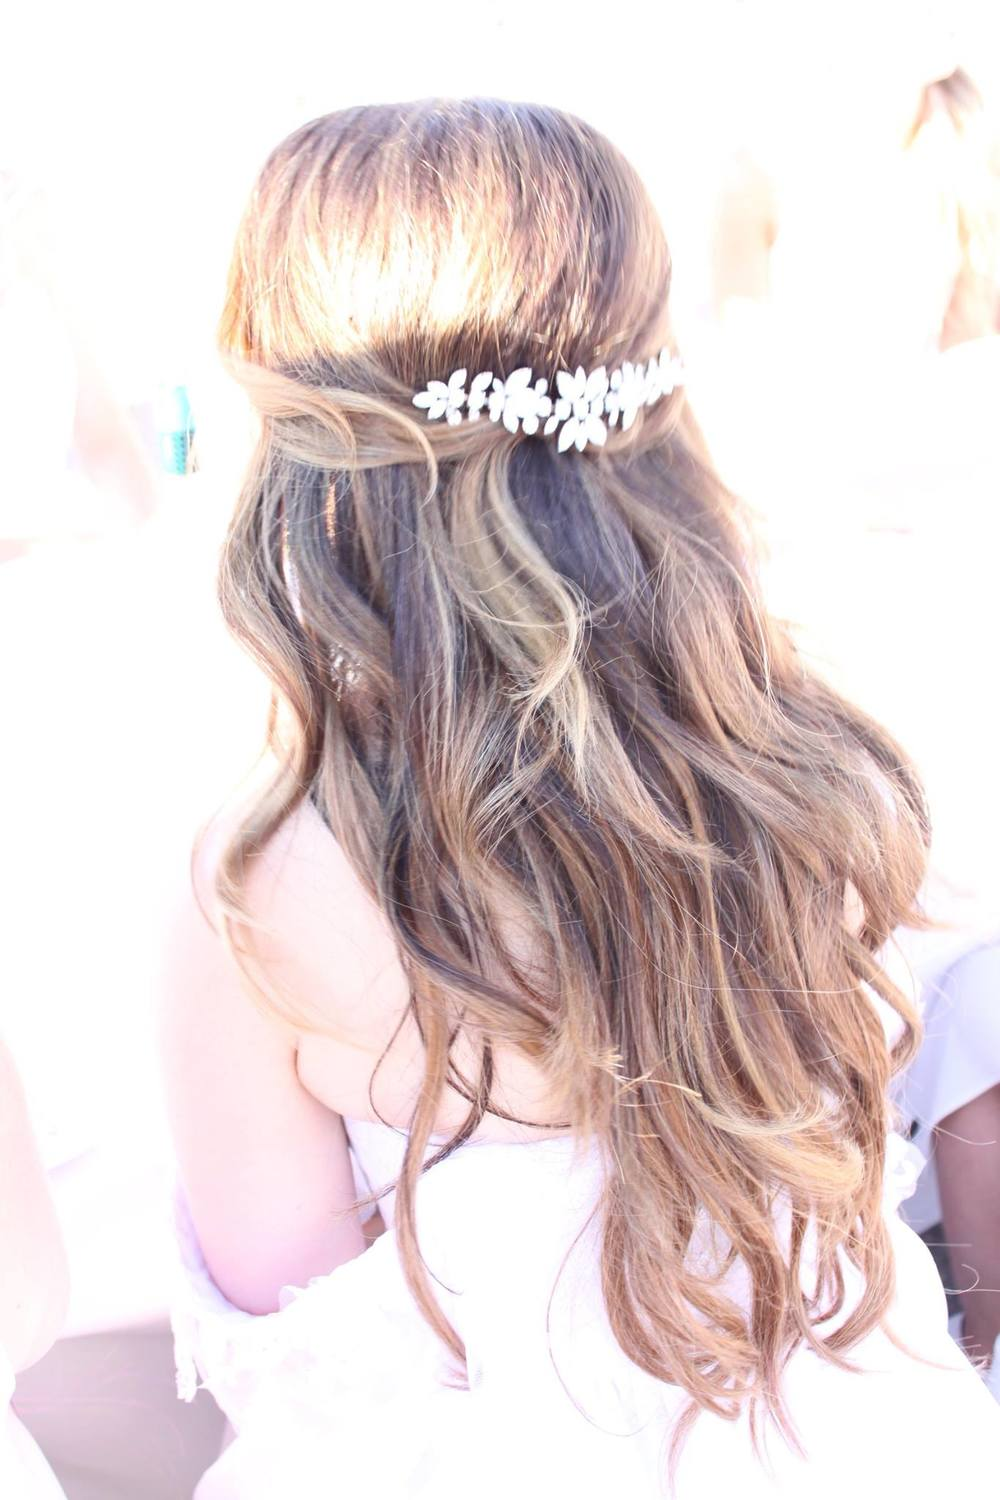 Wedding Hair Accessories by Elsa Corsi,  more on the blog: http://www.elsacorsi.com/blog//diner-en-blanc-and-sparkle